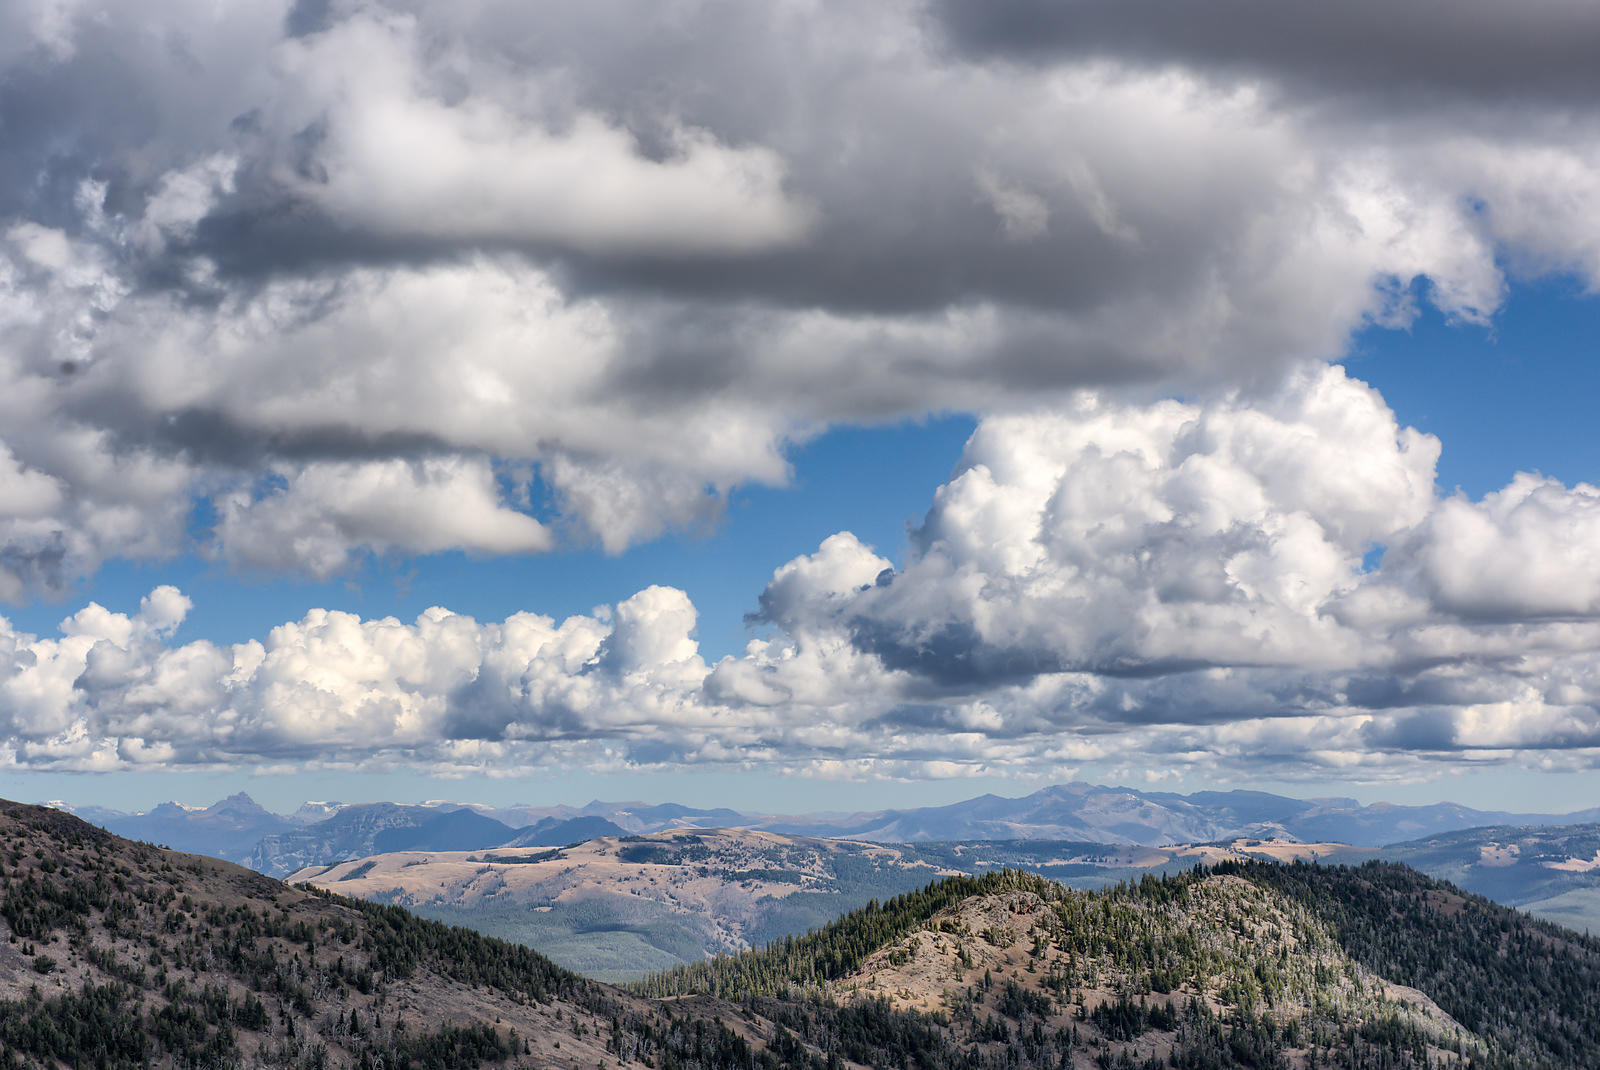 Yellowstone-View-From-Washburn-0288676-HDR-Rev1-Full